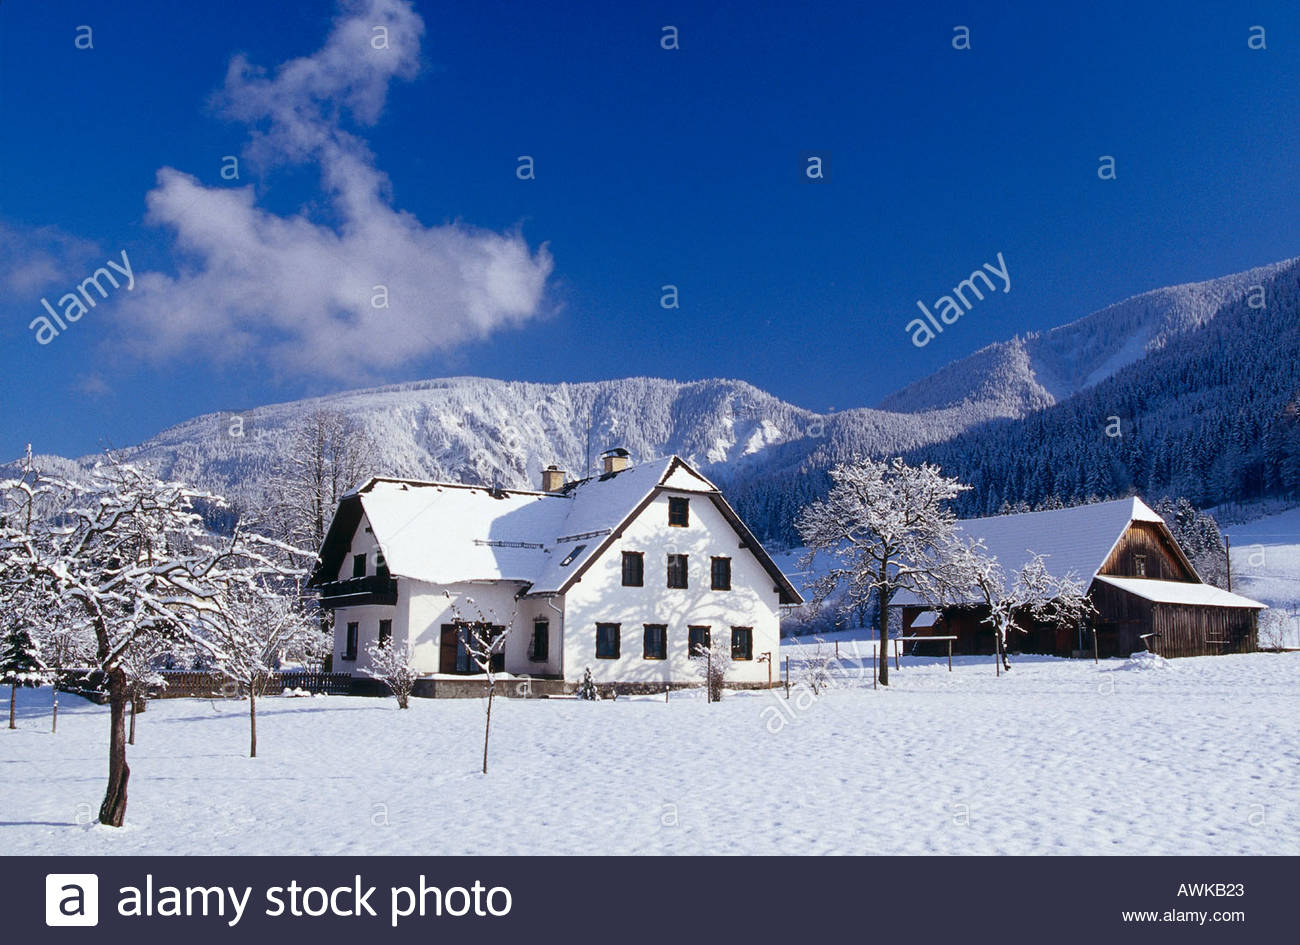 Buildings in snow covered landscape, Lassing, Lower Austria, Austria Stock Photo